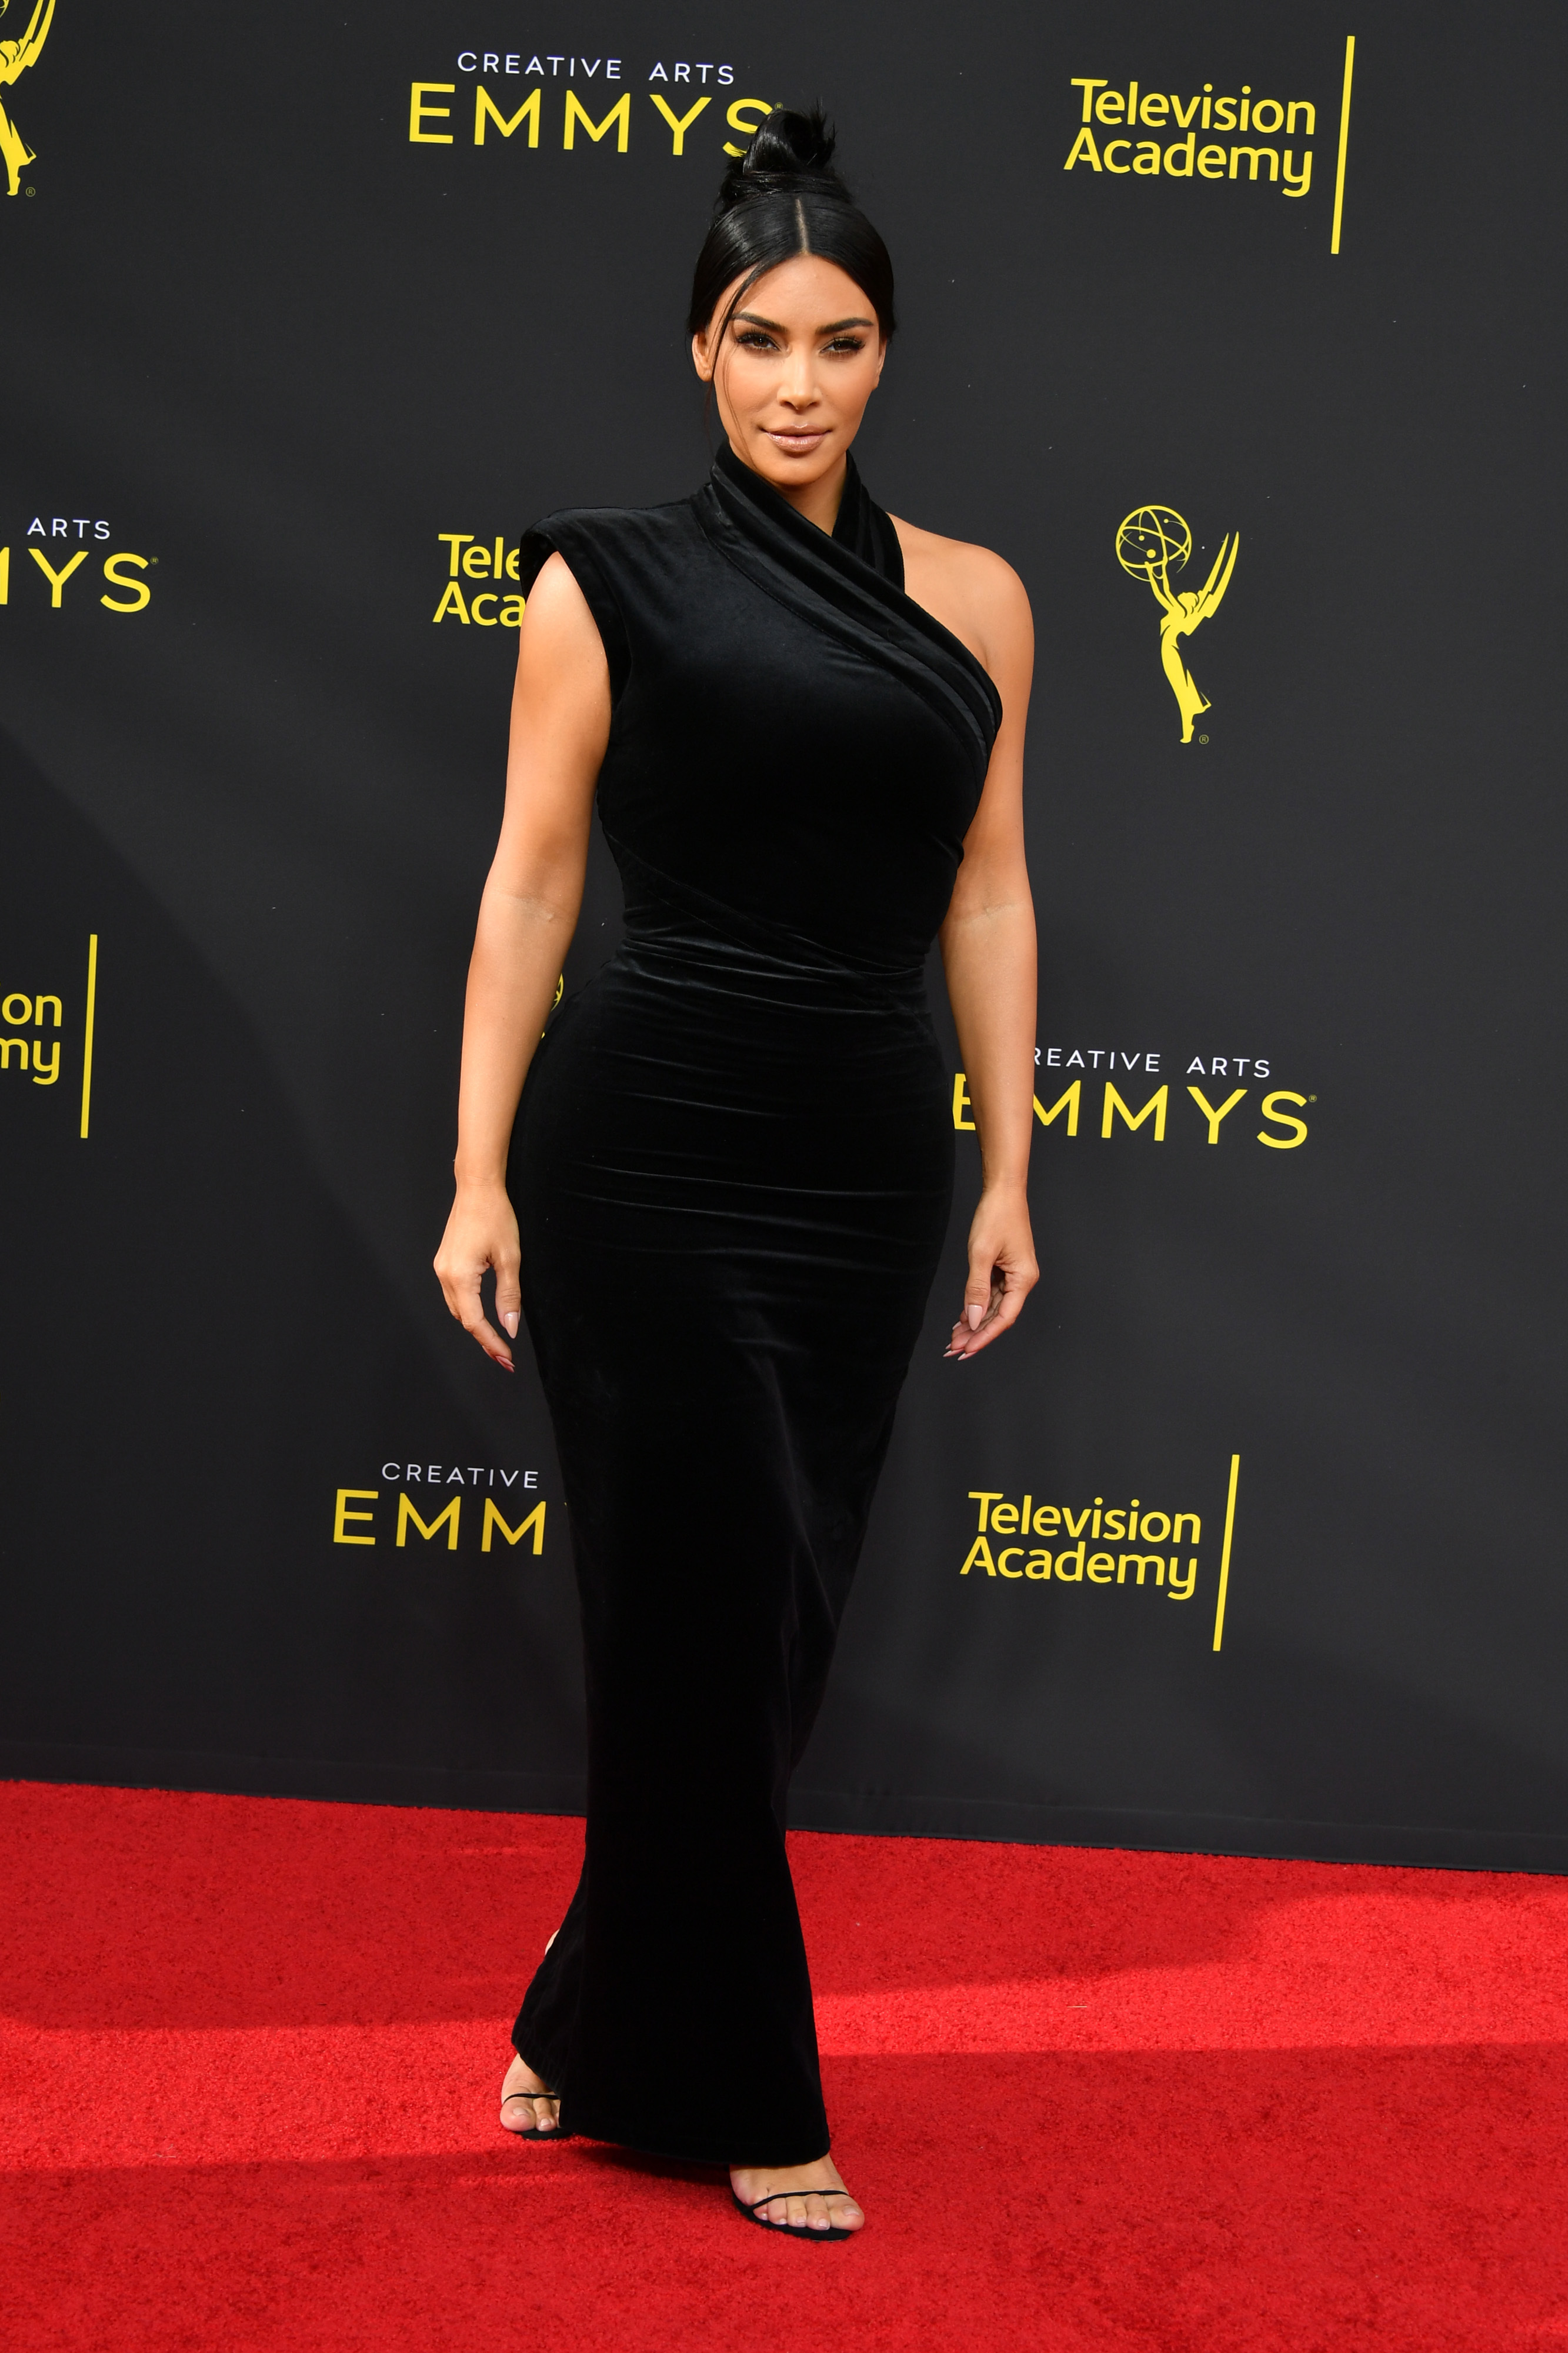 Kim Kardashian West attends the 2019 Creative Arts Emmy Awards in Los Angeles on Sept. 14, 2019.